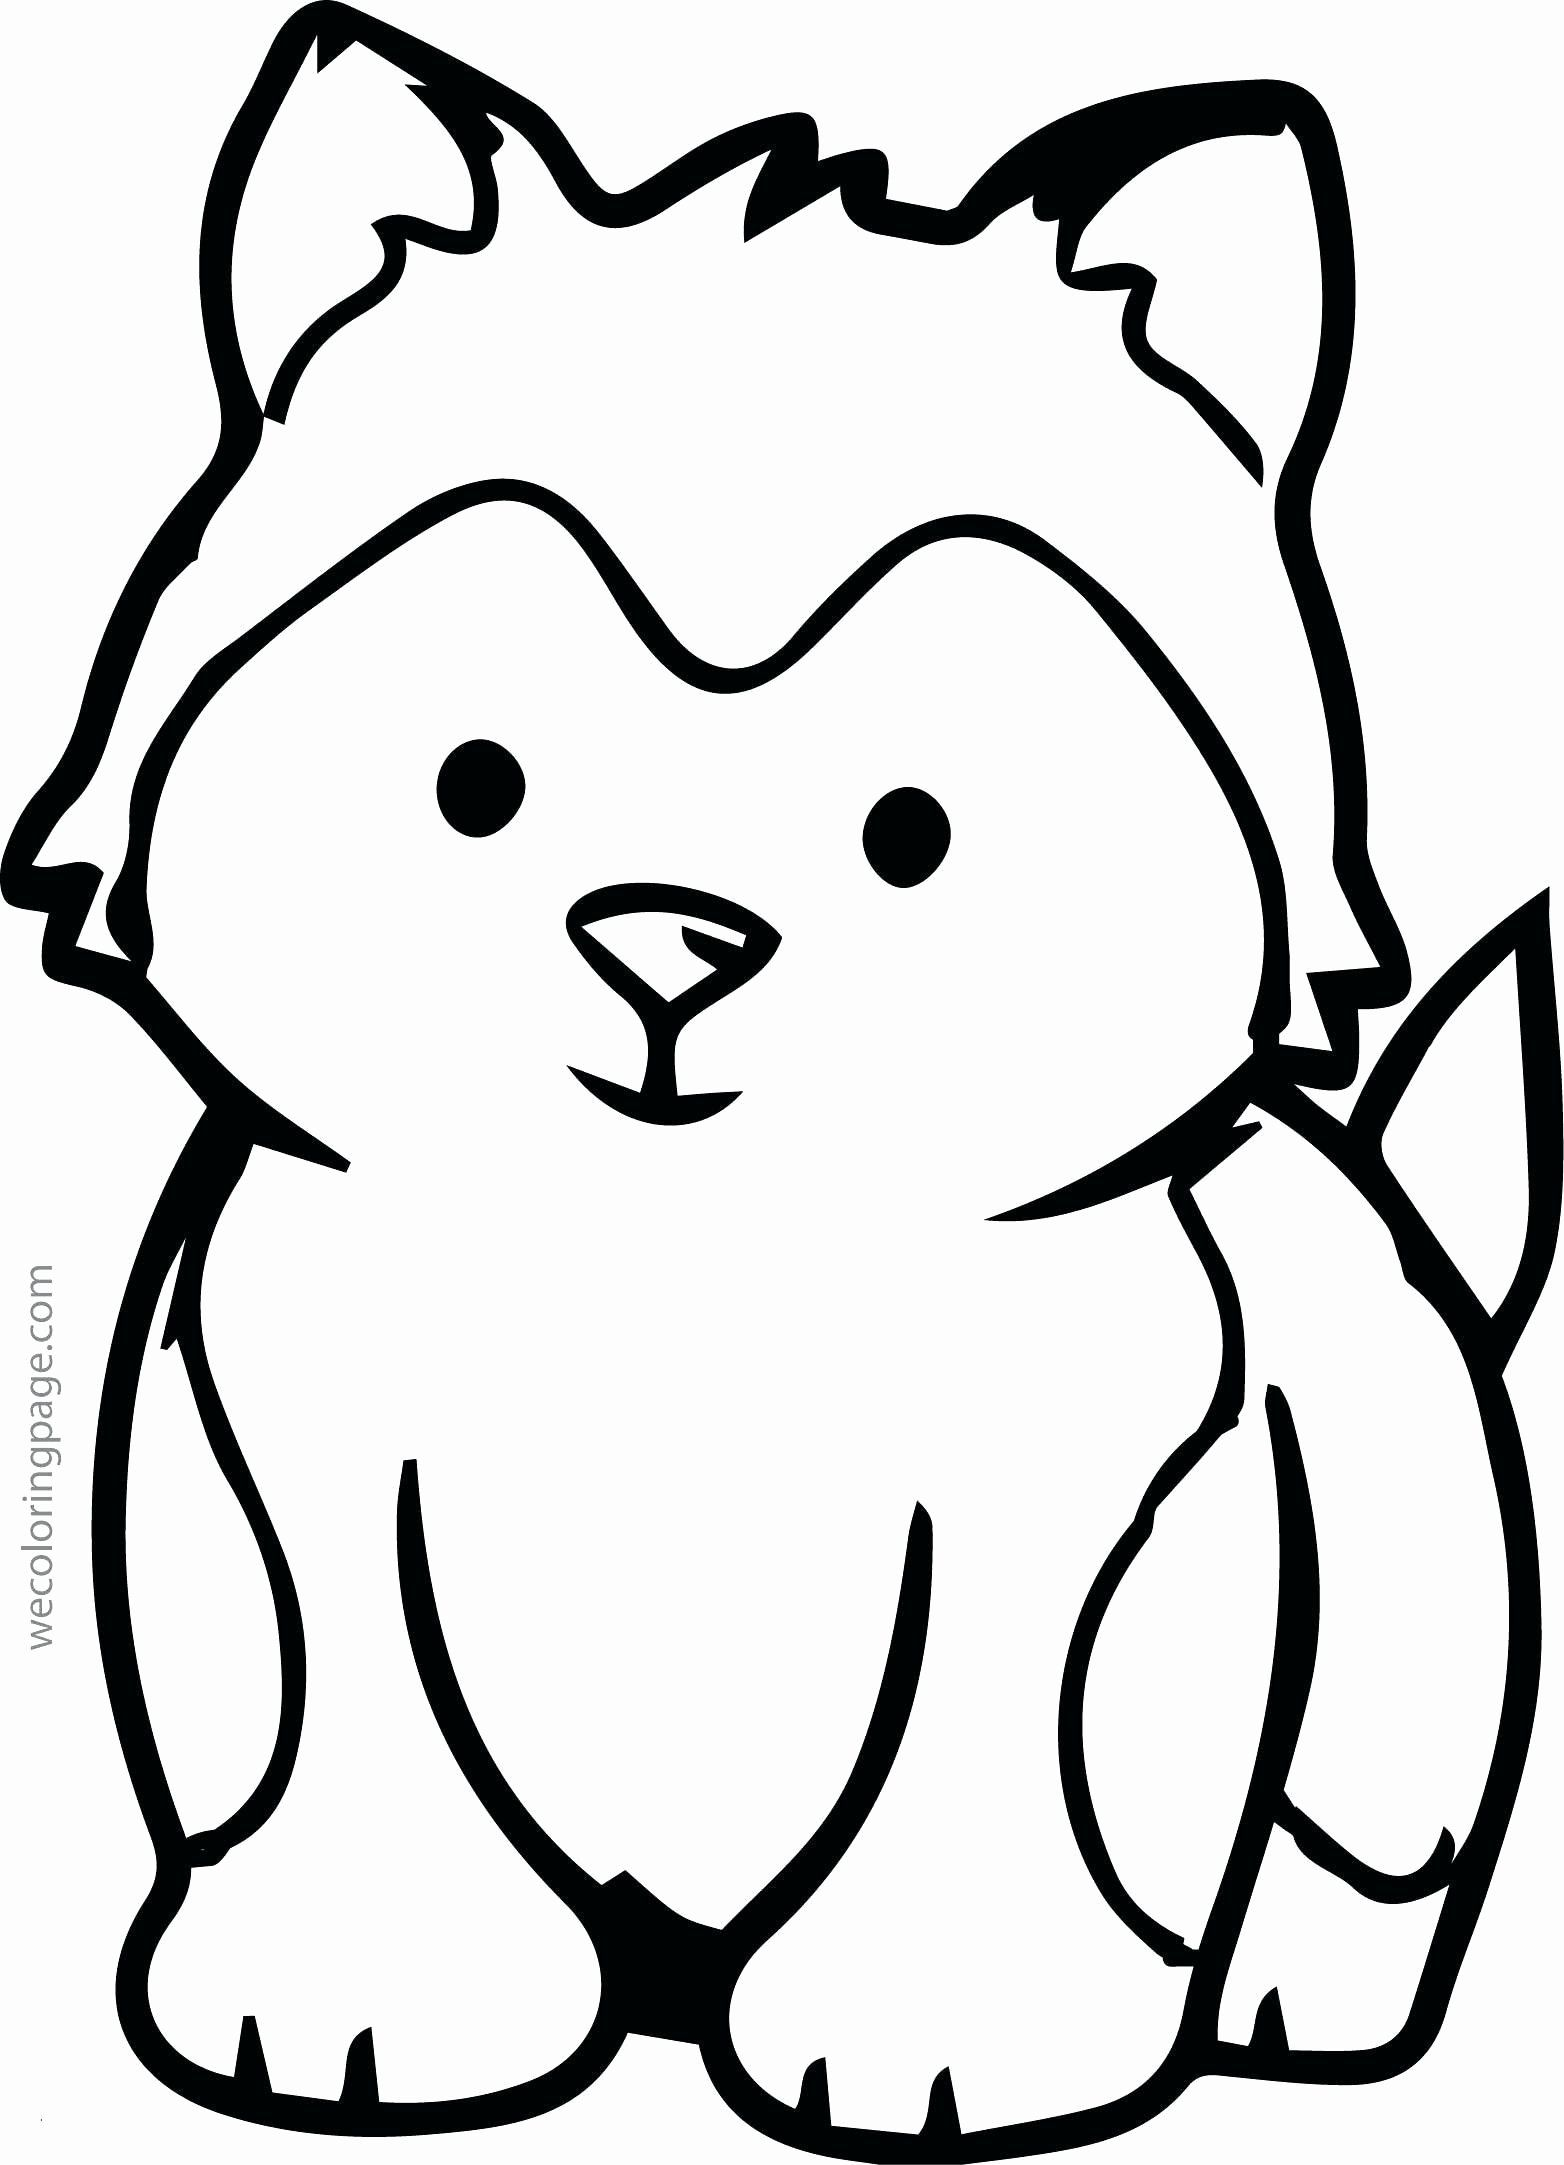 Coloring Pages Games Free Online New Unique Coloring Pages ...